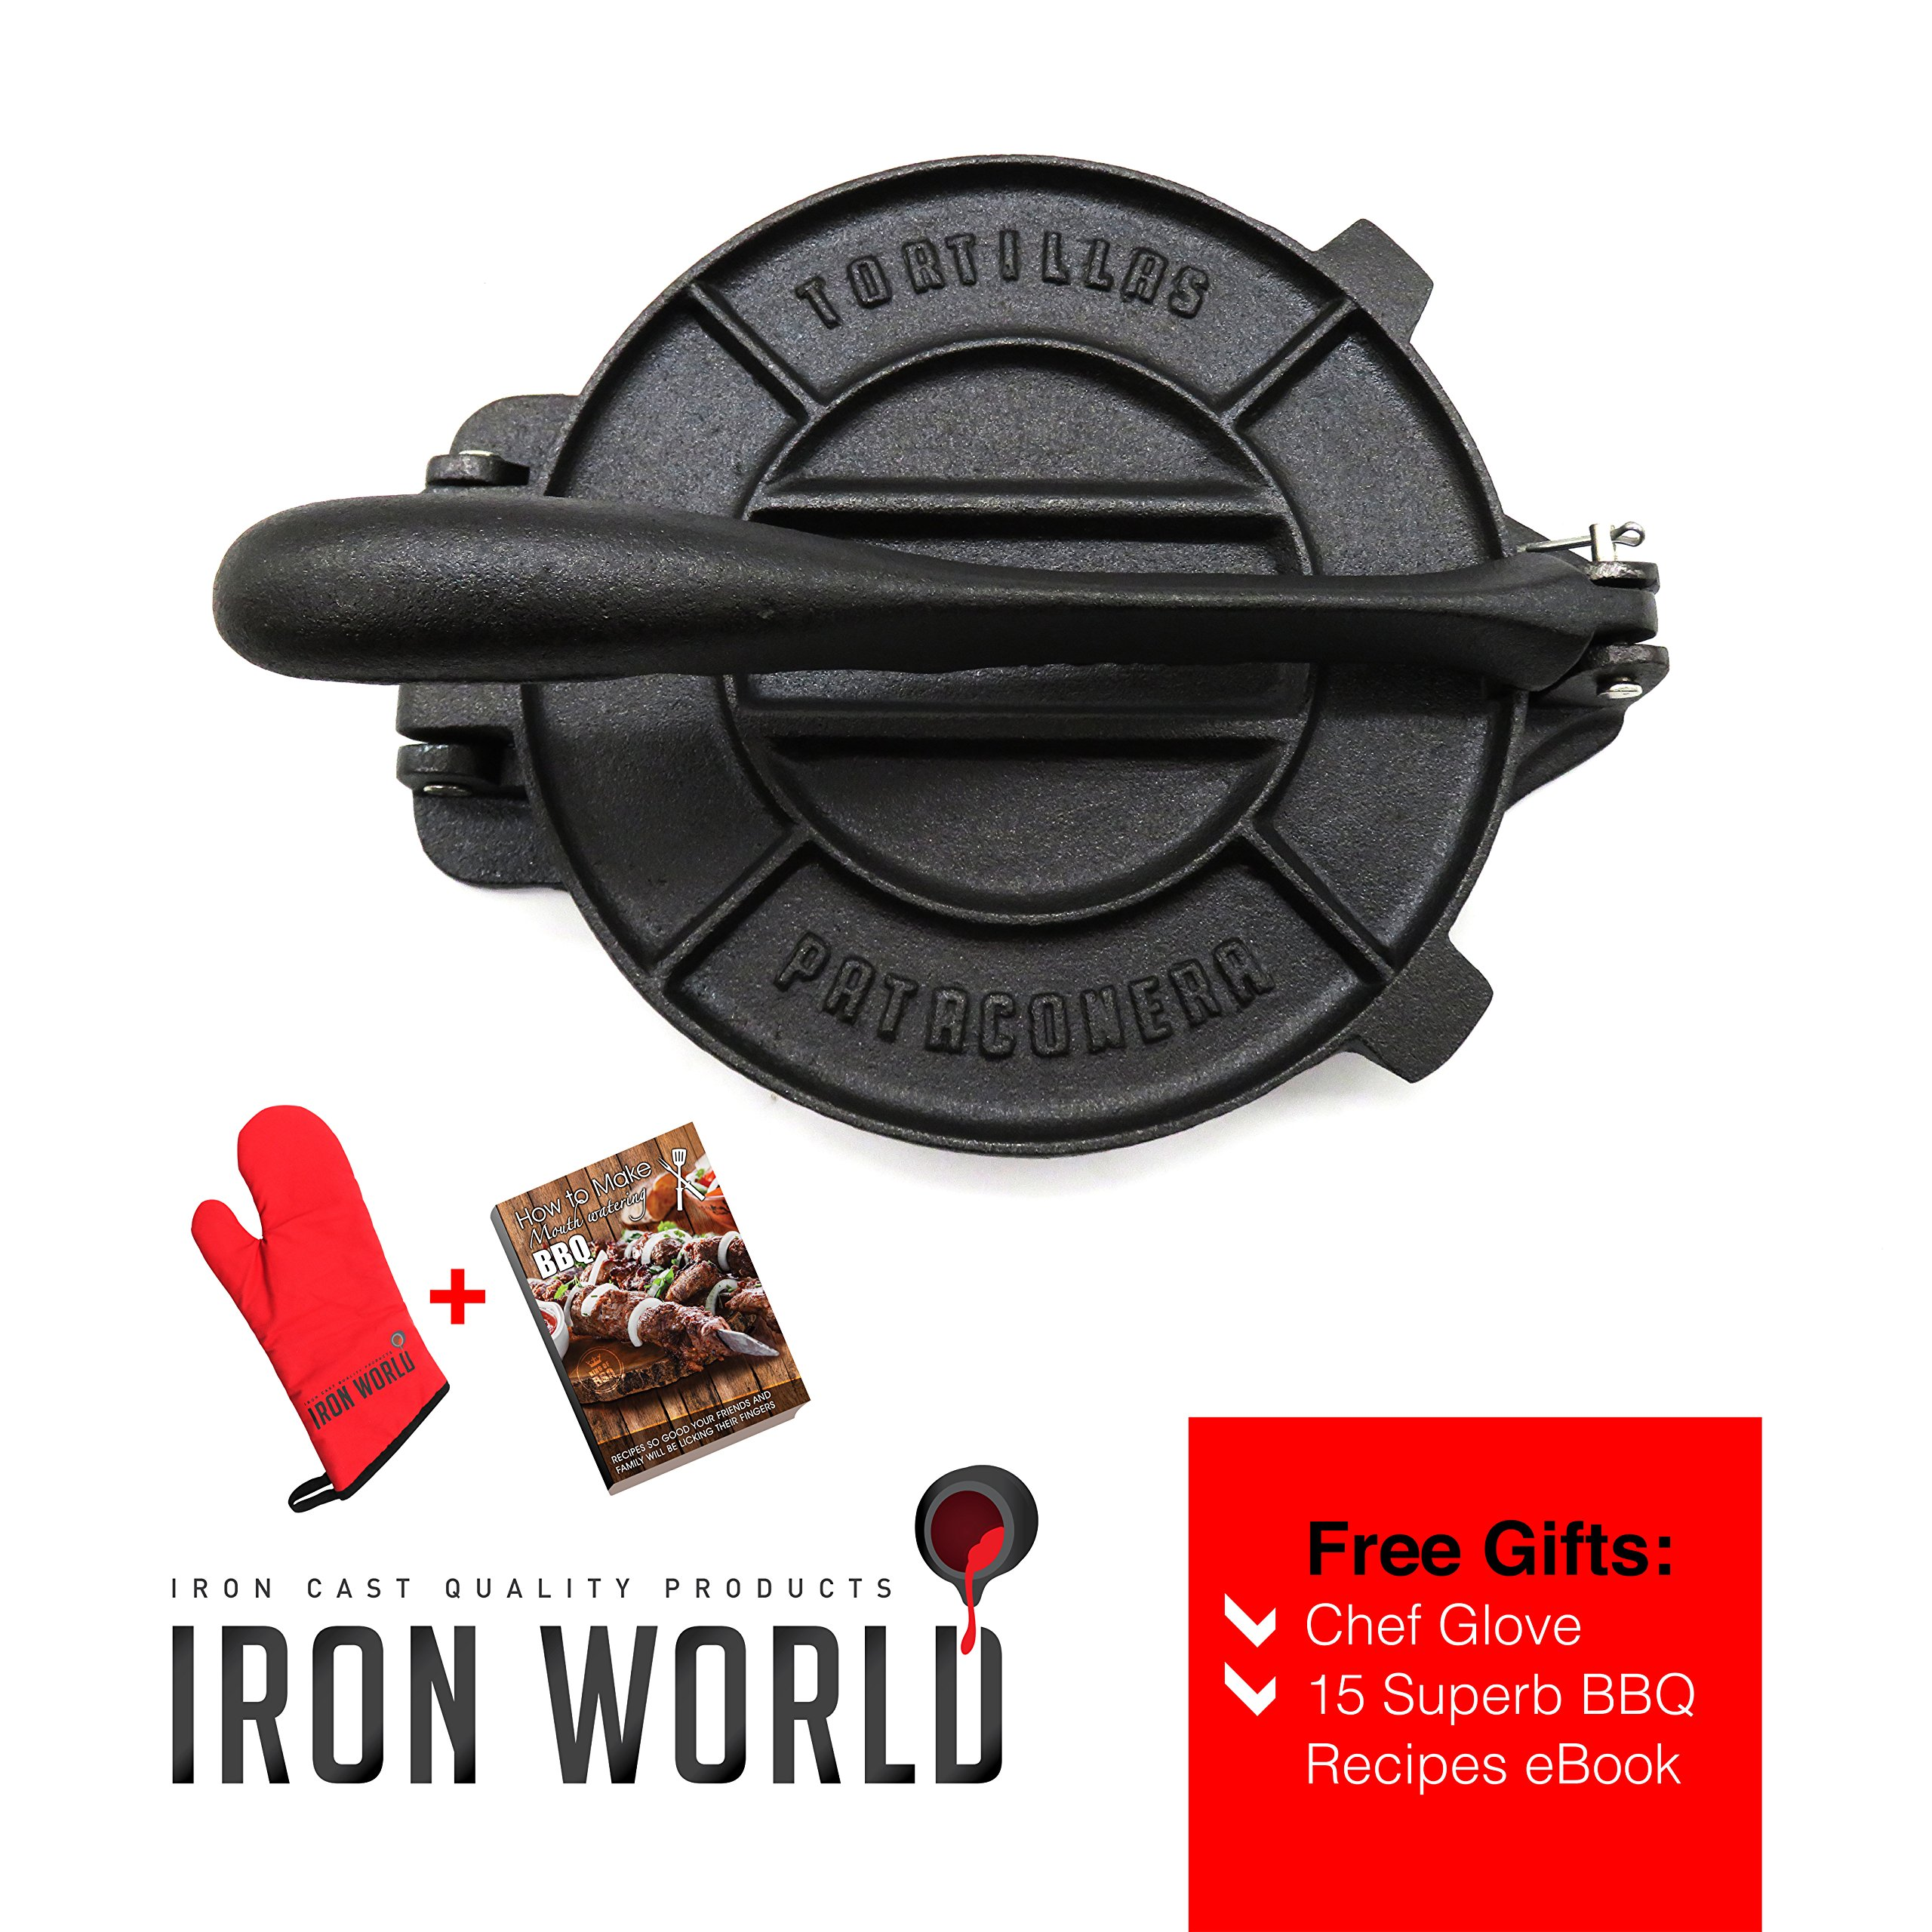 Iron World Tortilla Press Pre-seasoned - Cast Iron Tortilla Pataconera Roti Flatbread Pita Press. Seasoned 8 inch Heavy Gauge. Non Stick Corn Flour Iron Cast Press